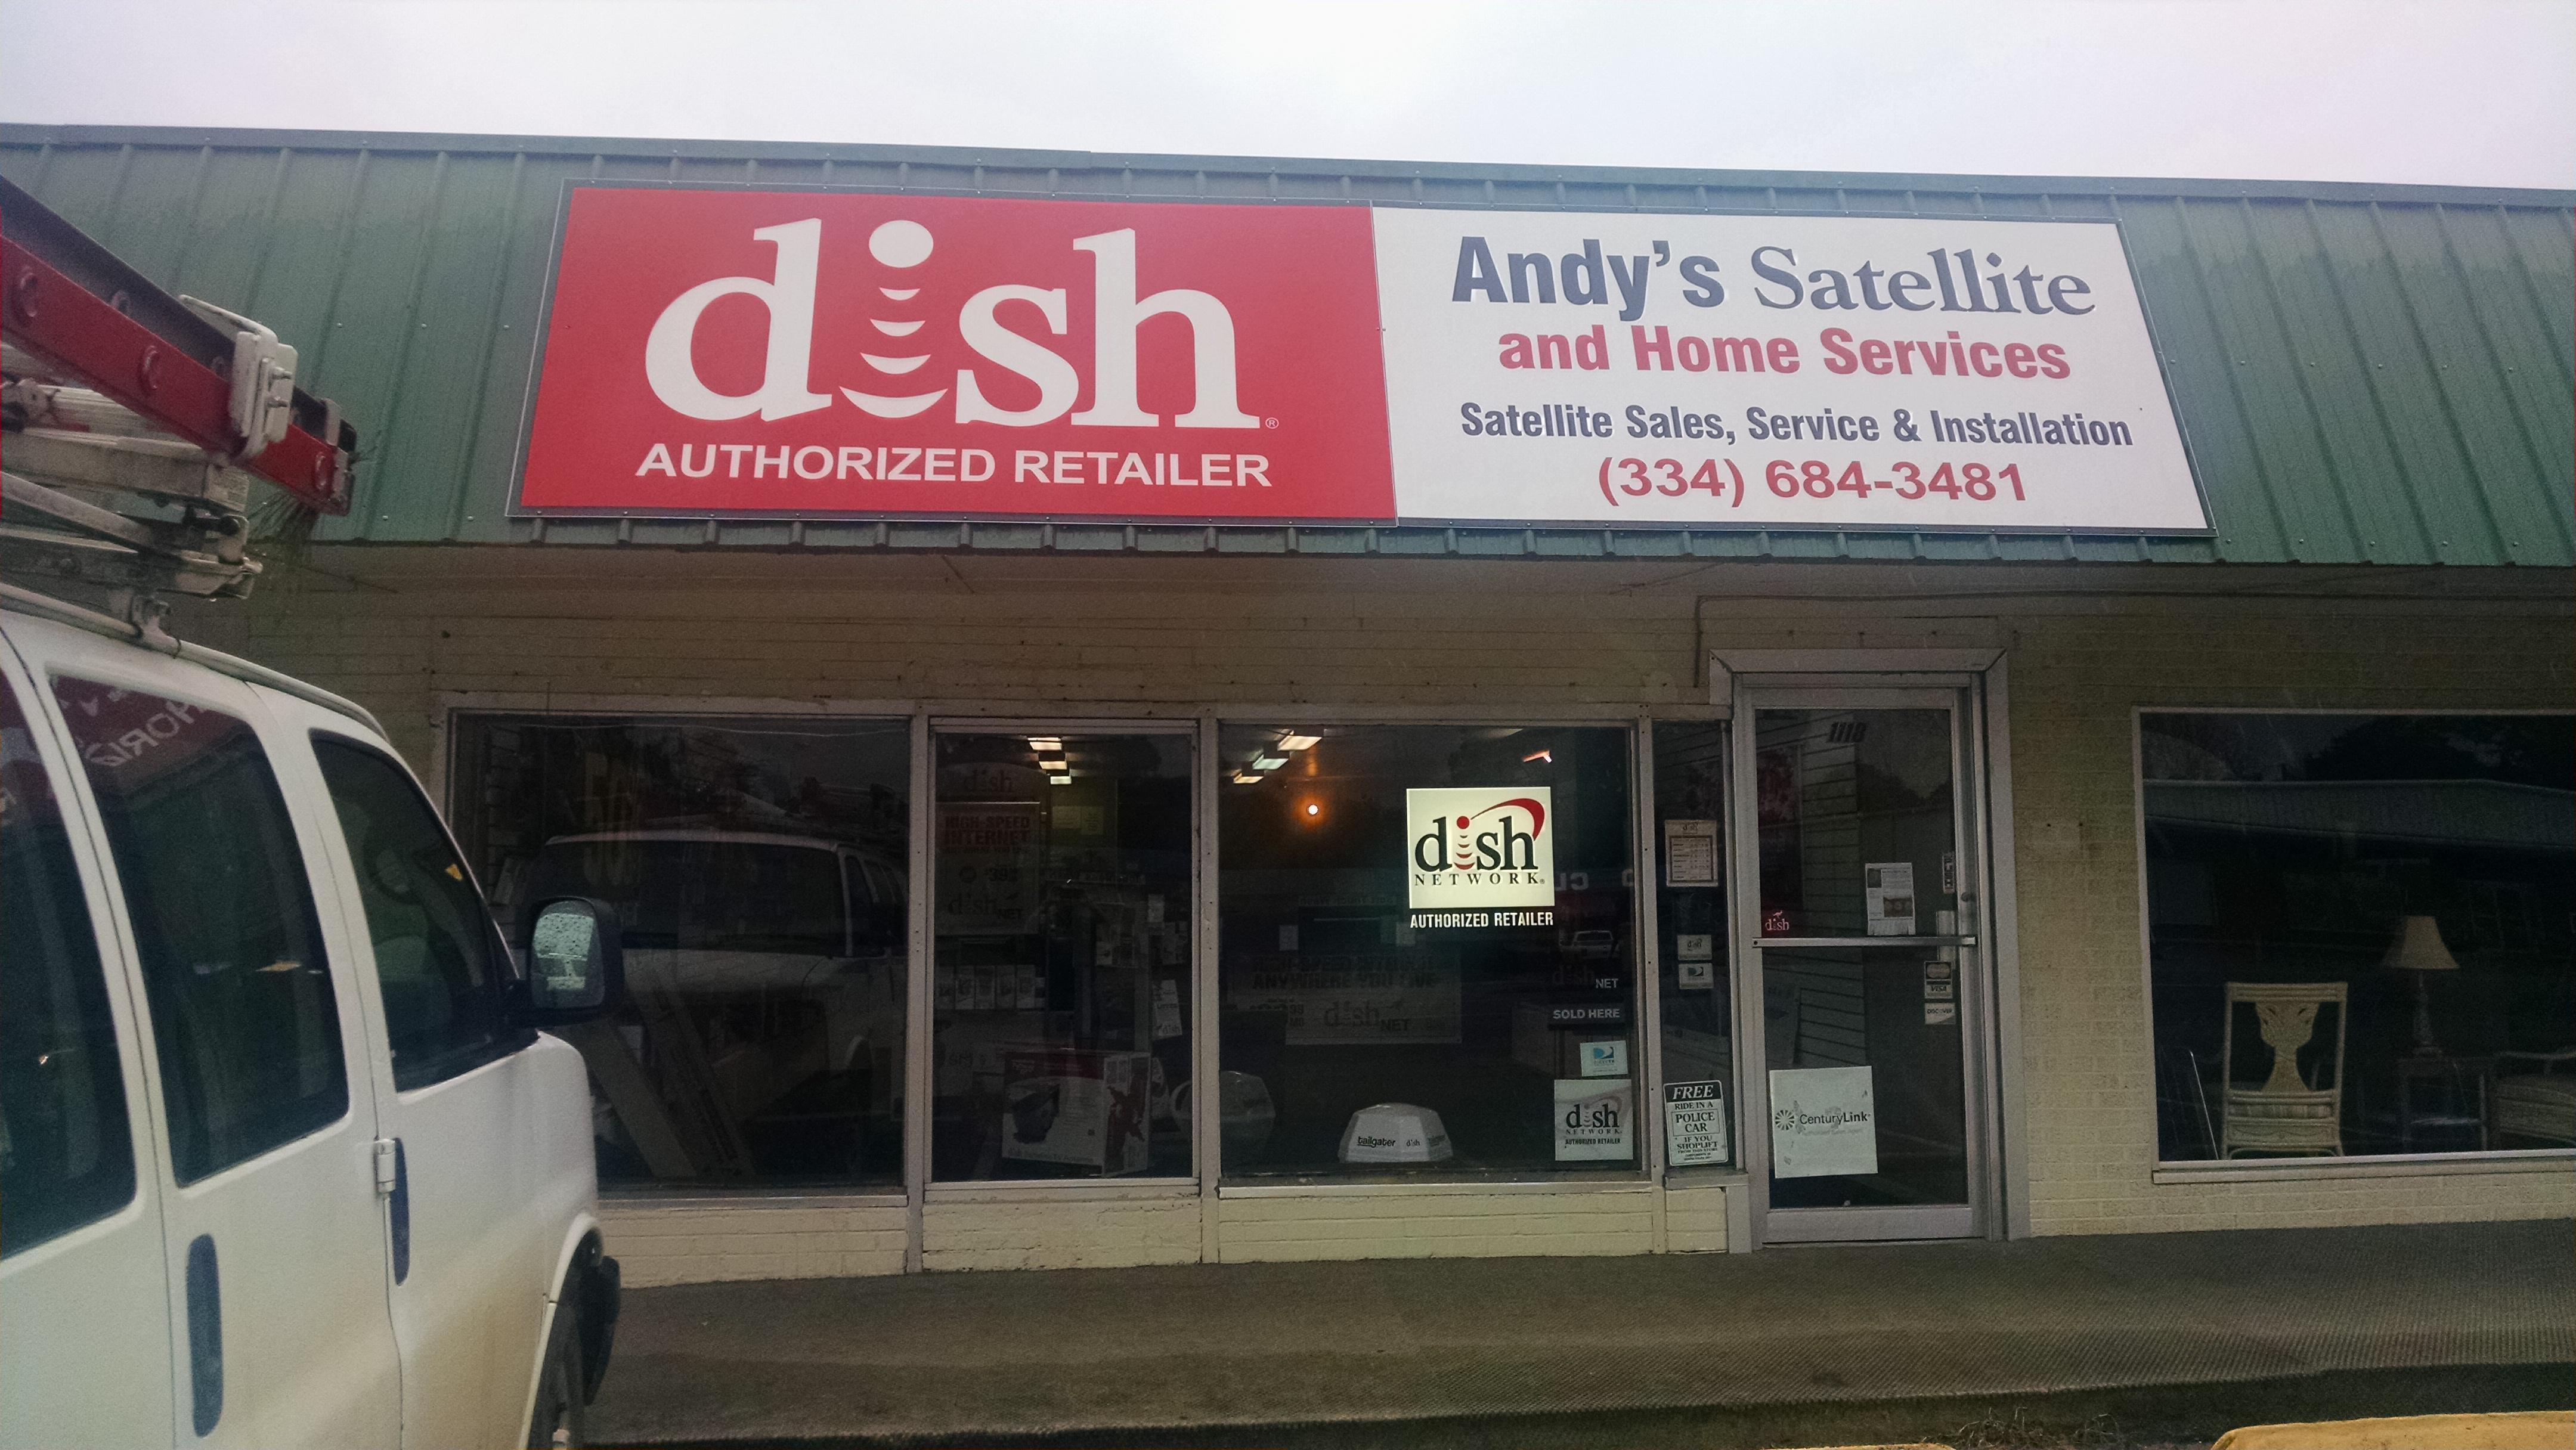 Andy's Satellite & Home Services